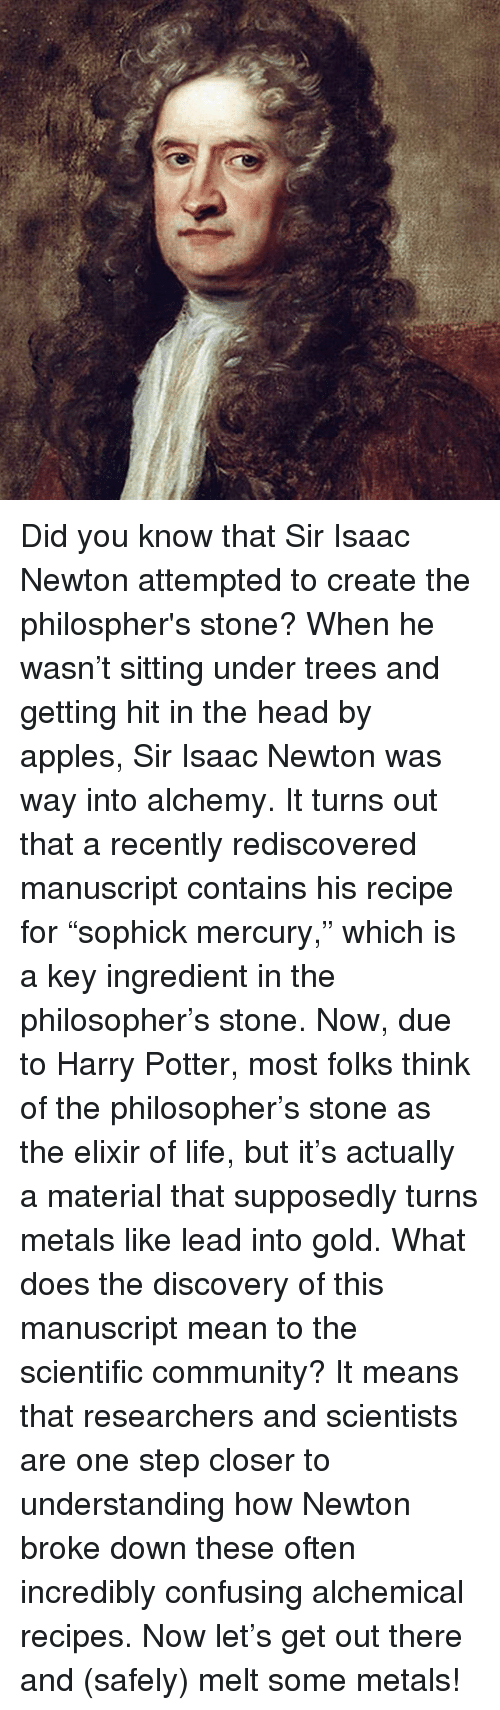 "Appl: Did you know that Sir Isaac Newton attempted to create the philospher's stone? When he wasn't sitting under trees and getting hit in the head by apples, Sir Isaac Newton was way into alchemy. It turns out that a recently rediscovered manuscript contains his recipe for ""sophick mercury,"" which is a key ingredient in the philosopher's stone. Now, due to Harry Potter, most folks think of the philosopher's stone as the elixir of life, but it's actually a material that supposedly turns metals like lead into gold. What does the discovery of this manuscript mean to the scientific community? It means that researchers and scientists are one step closer to understanding how Newton broke down these often incredibly confusing alchemical recipes. Now let's get out there and (safely) melt some metals!"